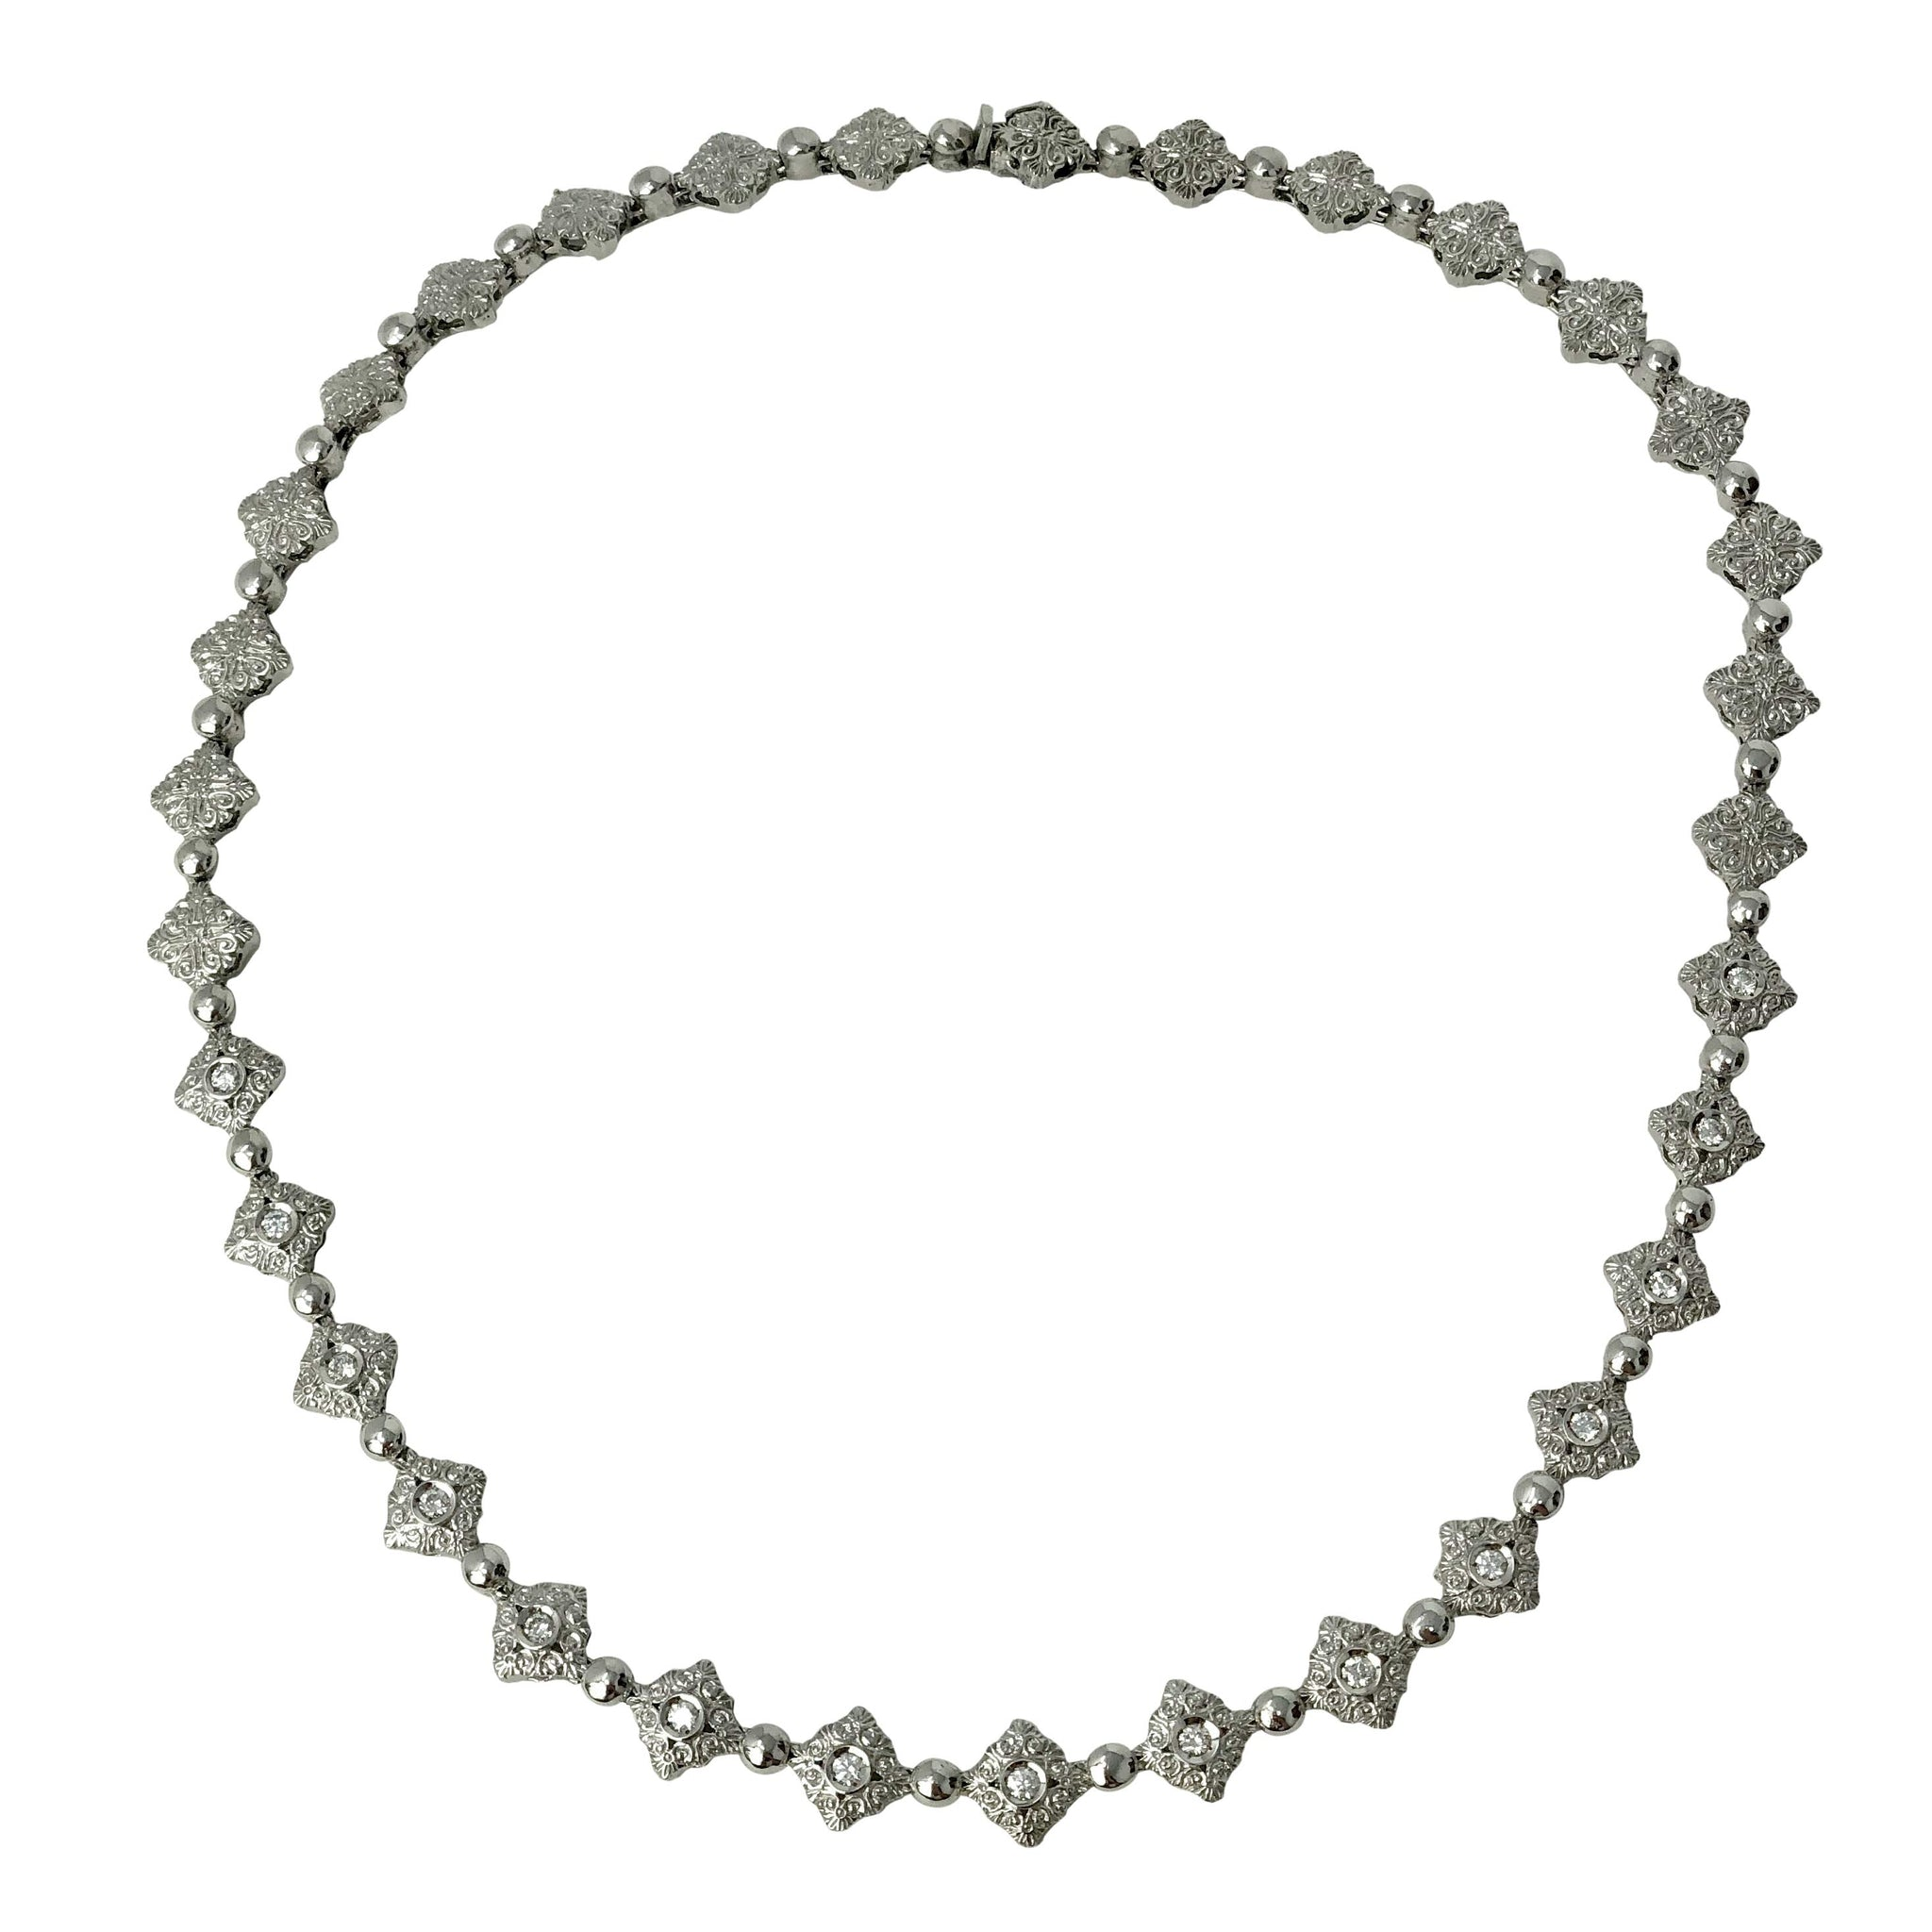 Moda Italia - Diamonds Are Wild Collar -18k White Gold Diamond Necklace